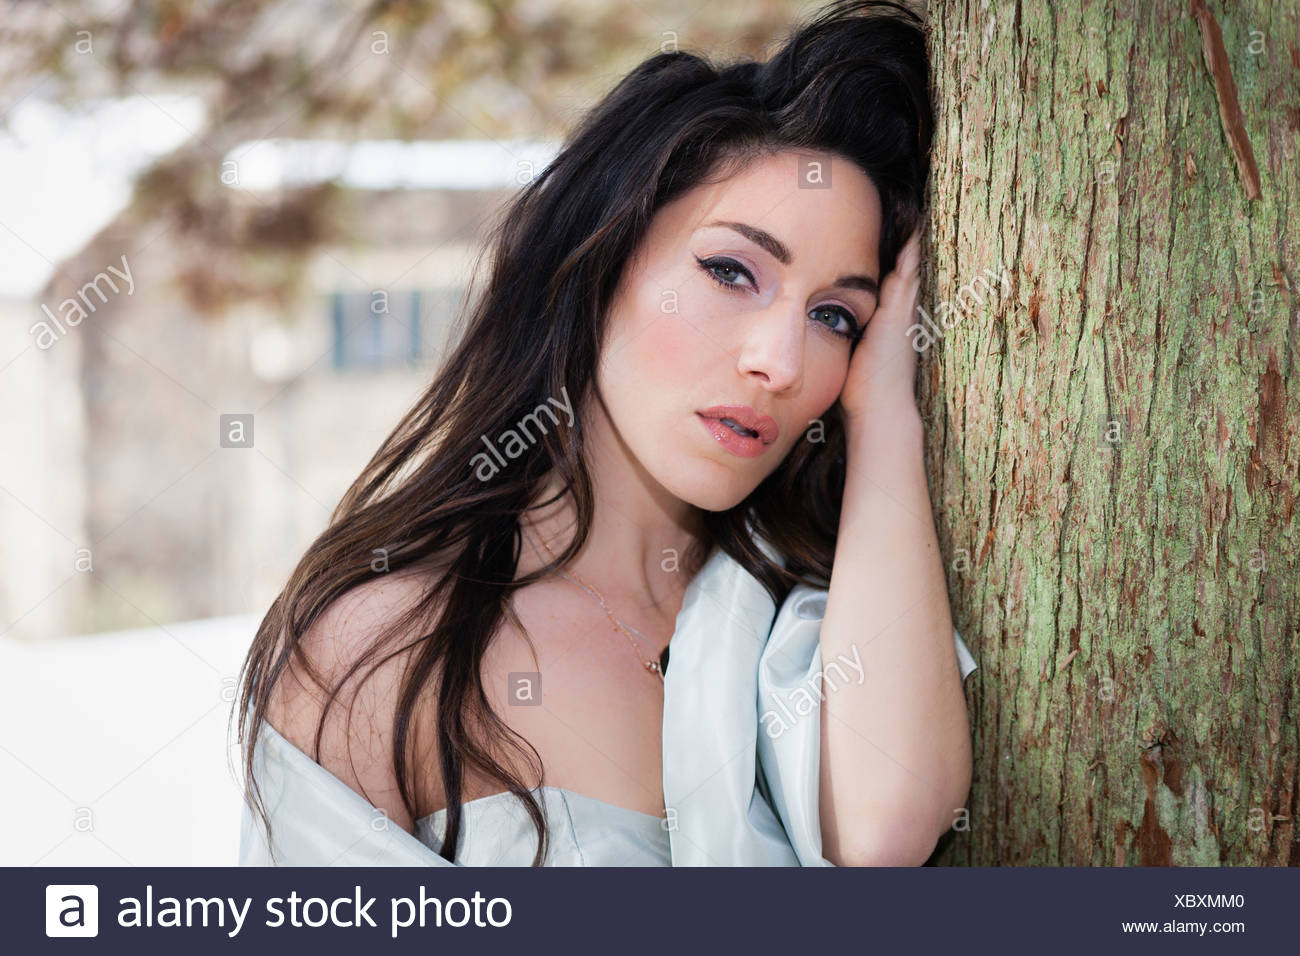 A woman with a light shawl by a tree in snow. - Stock Image